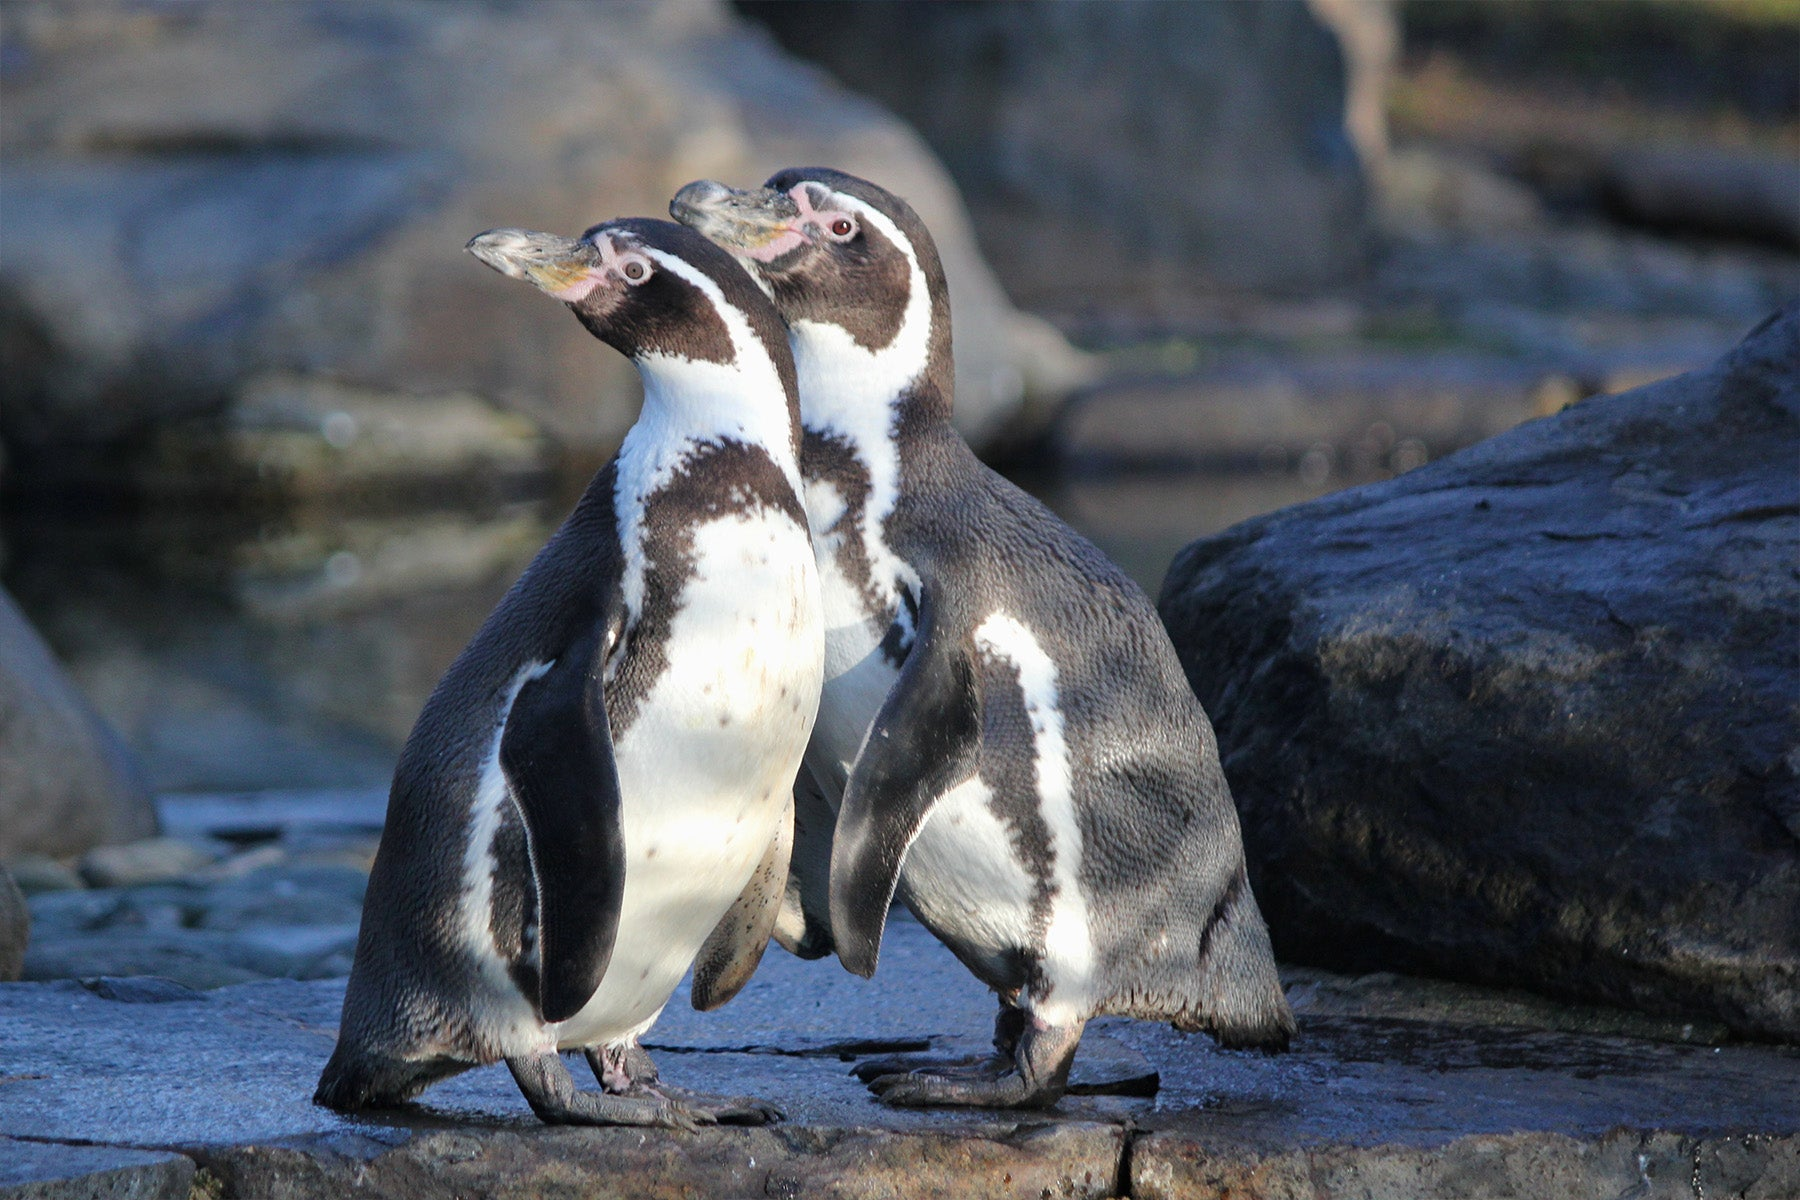 London Zoo Gay Penguins Celebrate Pride | Photo by Dušan Smetana on Unsplash